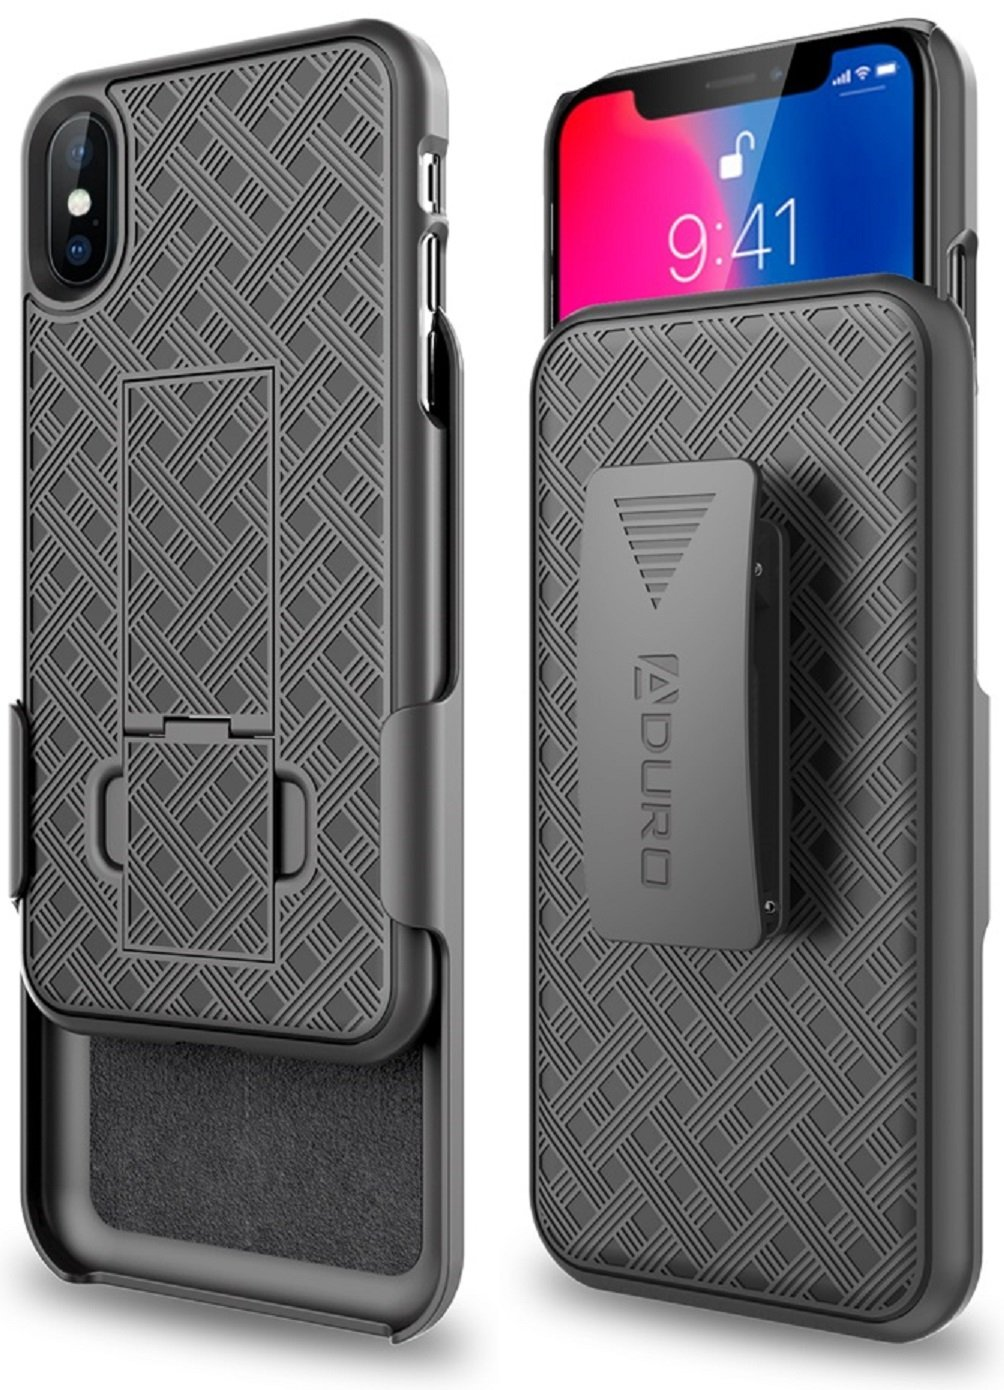 Aduro iPhone X/XS Holster Case, Combo Shell & Holster Case - Super Slim Shell Case with Built-in Kickstand, Swivel Belt Clip Holster for Apple iPhone X/XS/iPhone 10 (2018/2017) by Aduro